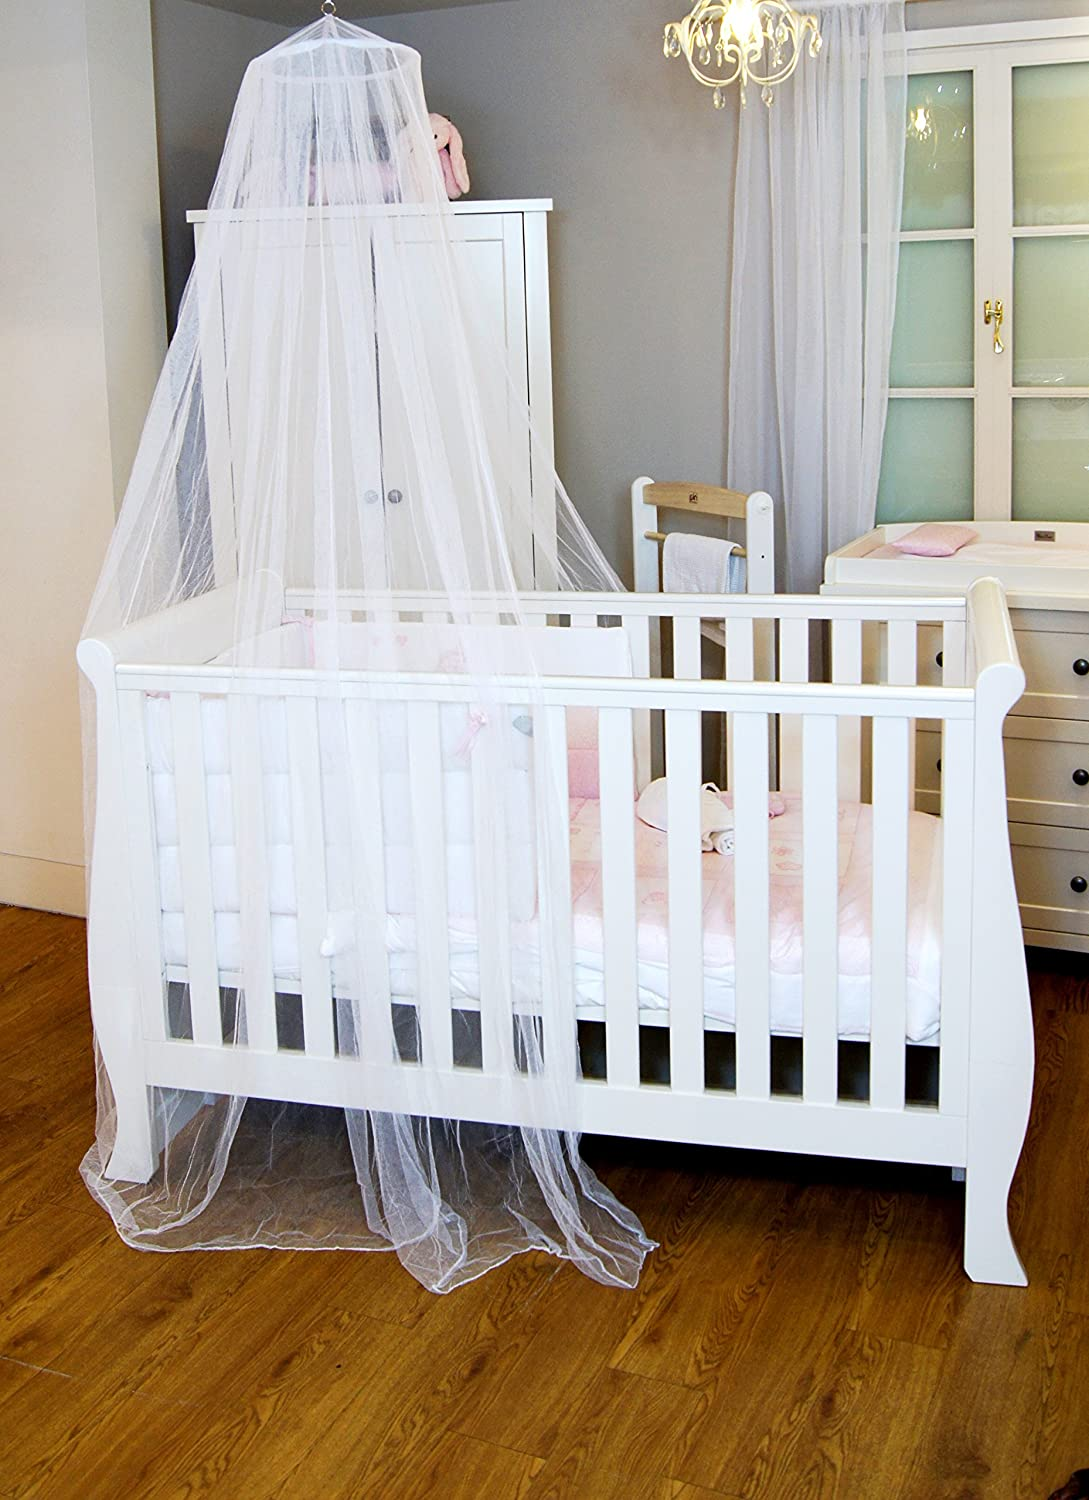 Baby bed holder - Bed Canopy Insect Protection For Babies And Cots Easy To Install Baby Bed Canopy